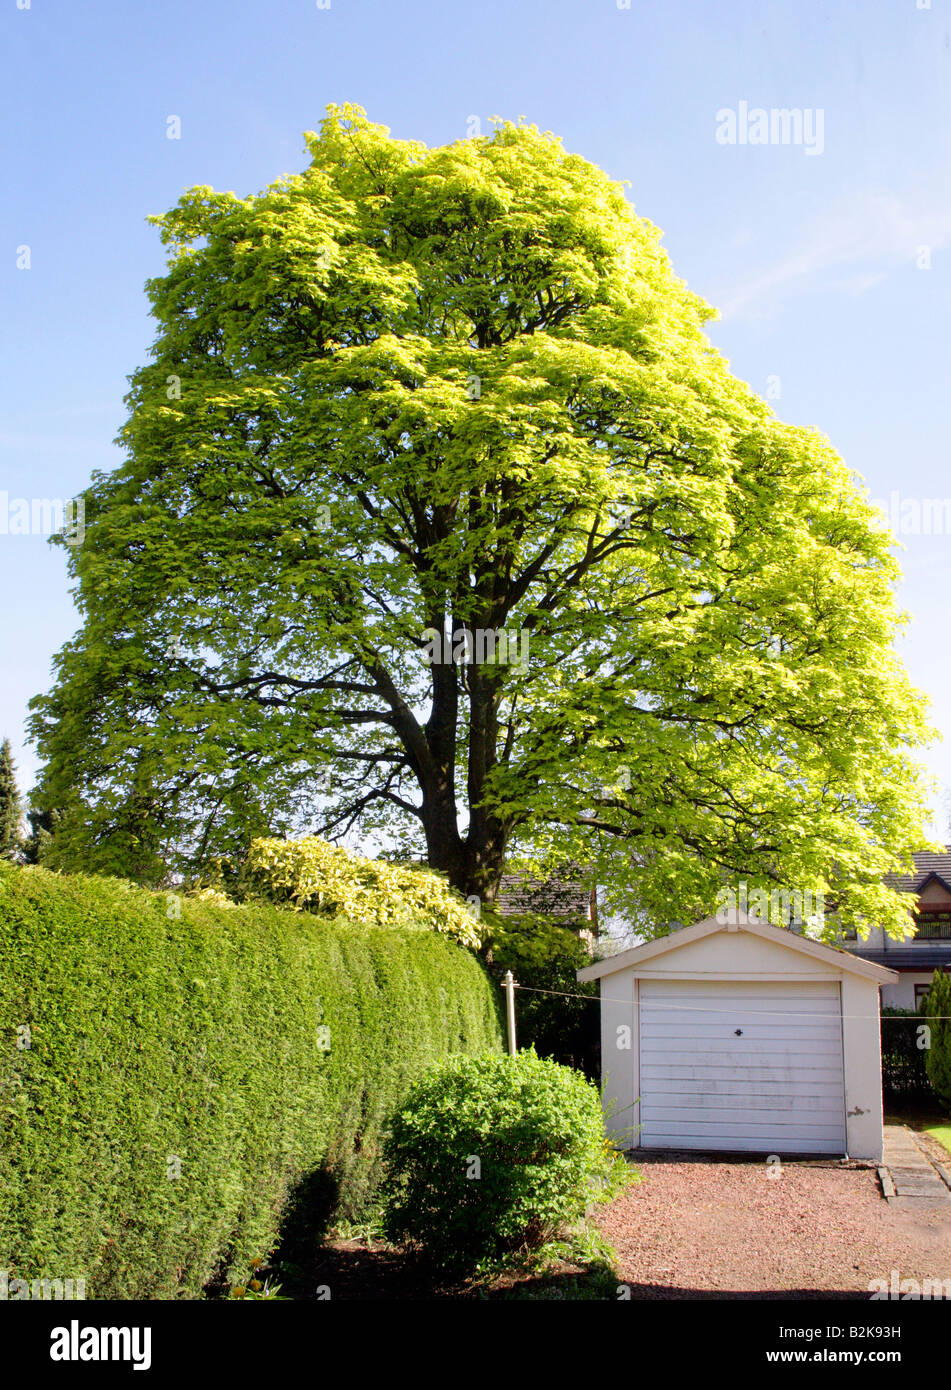 Norwegian Maple tree,yellow leafed in Spring in Central Scotland - Stock Image